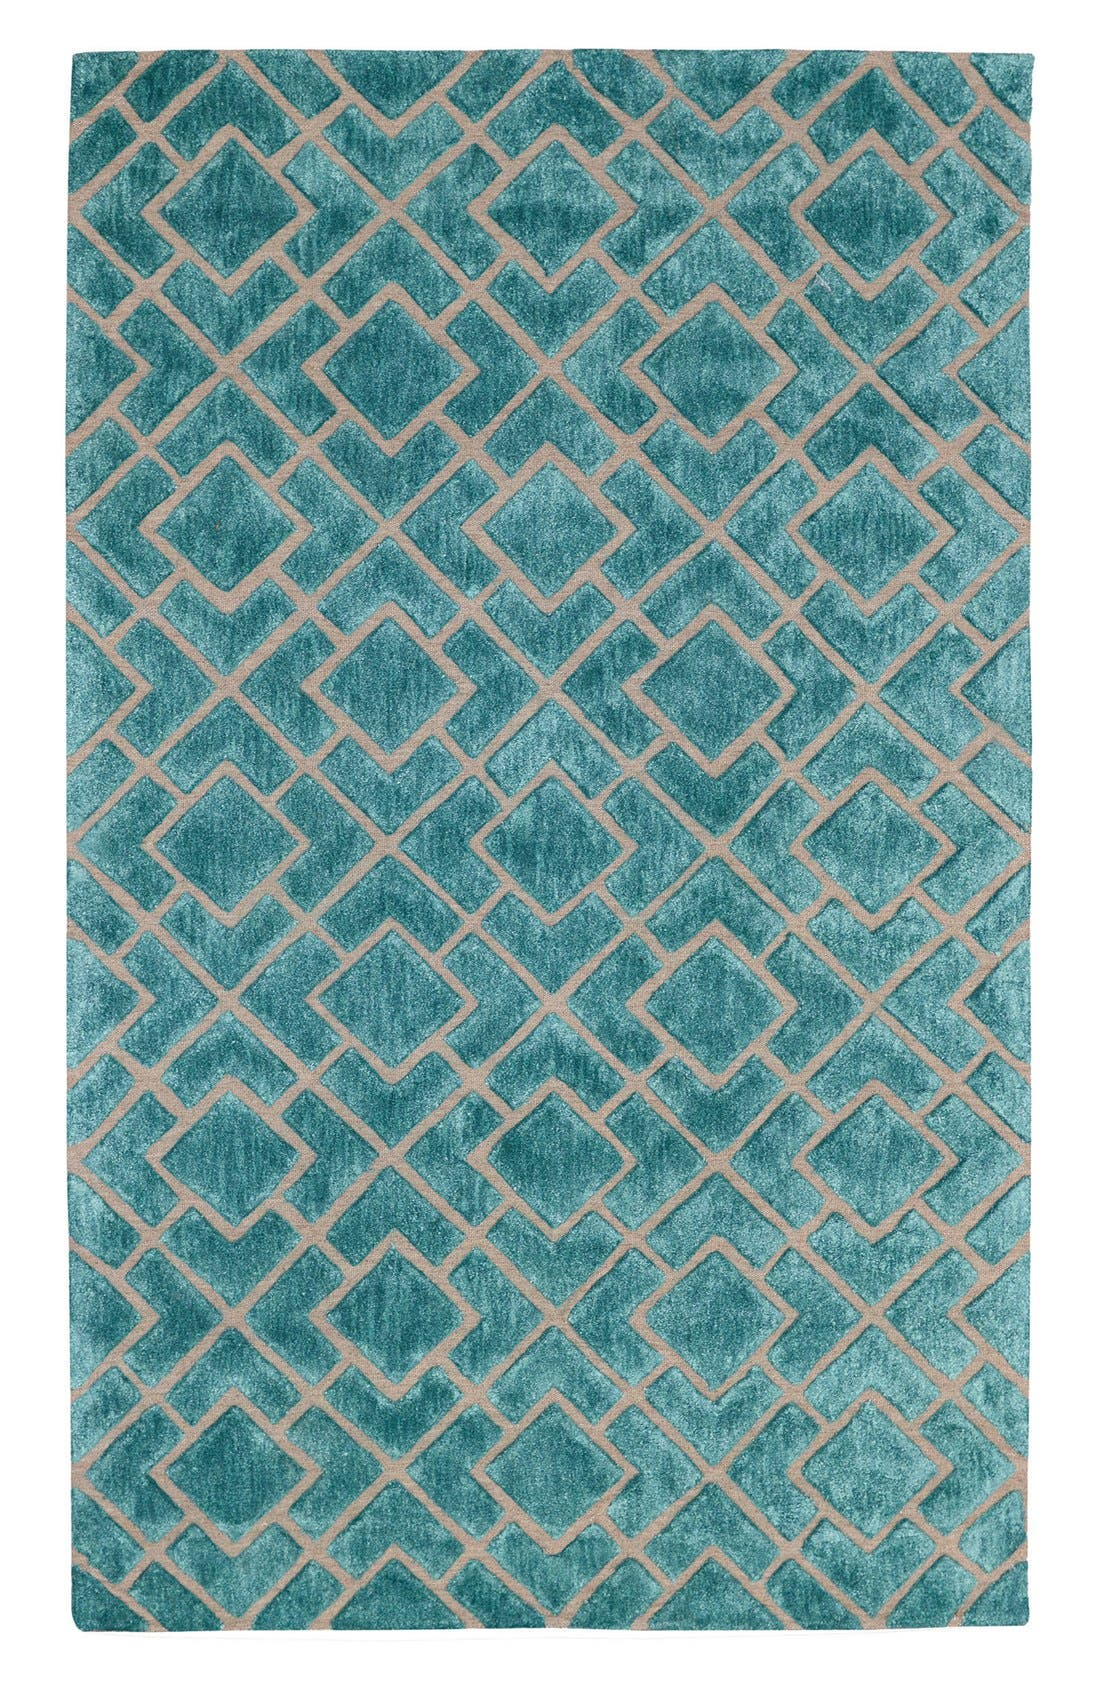 'Over Tufted - Turquoise' Rug,                         Main,                         color, 440